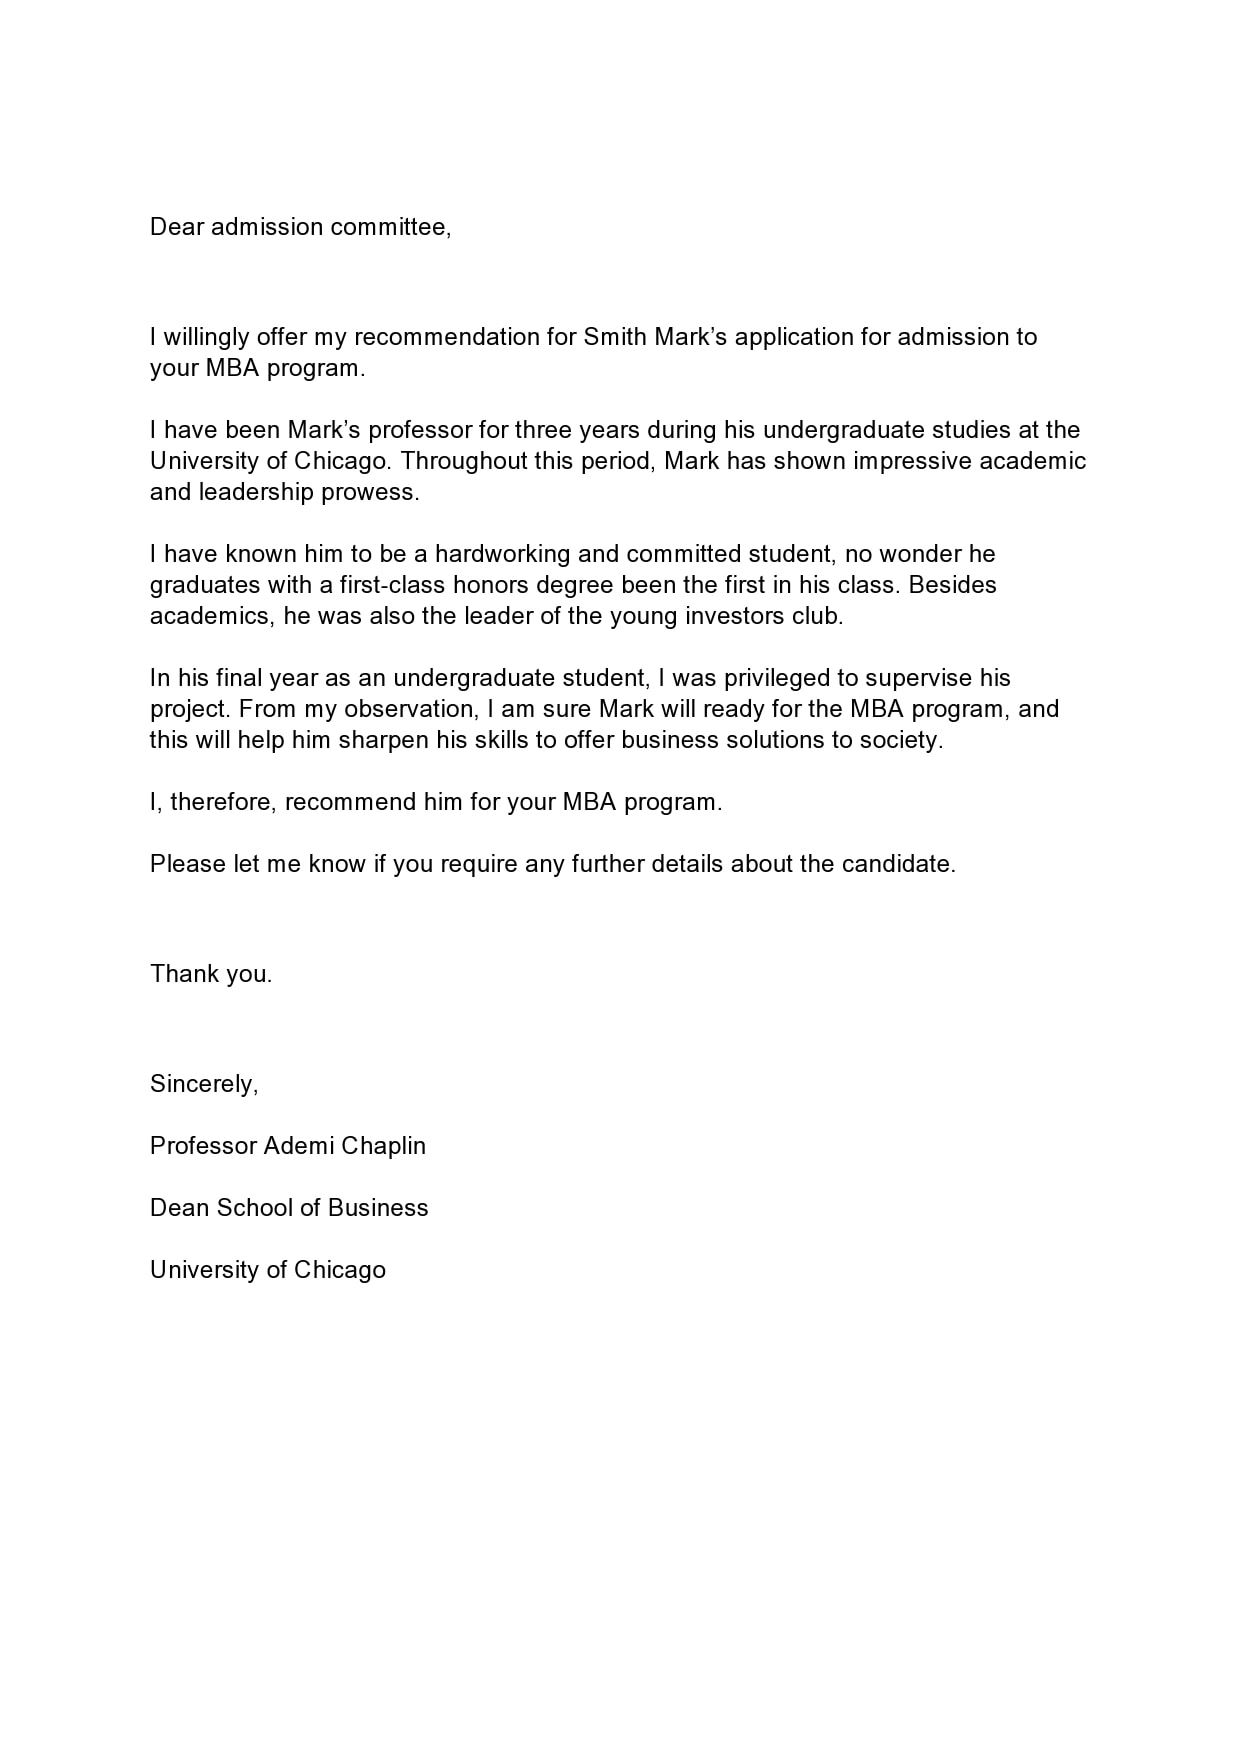 Sample Of Recommendation Letter For University Admission from templatearchive.com